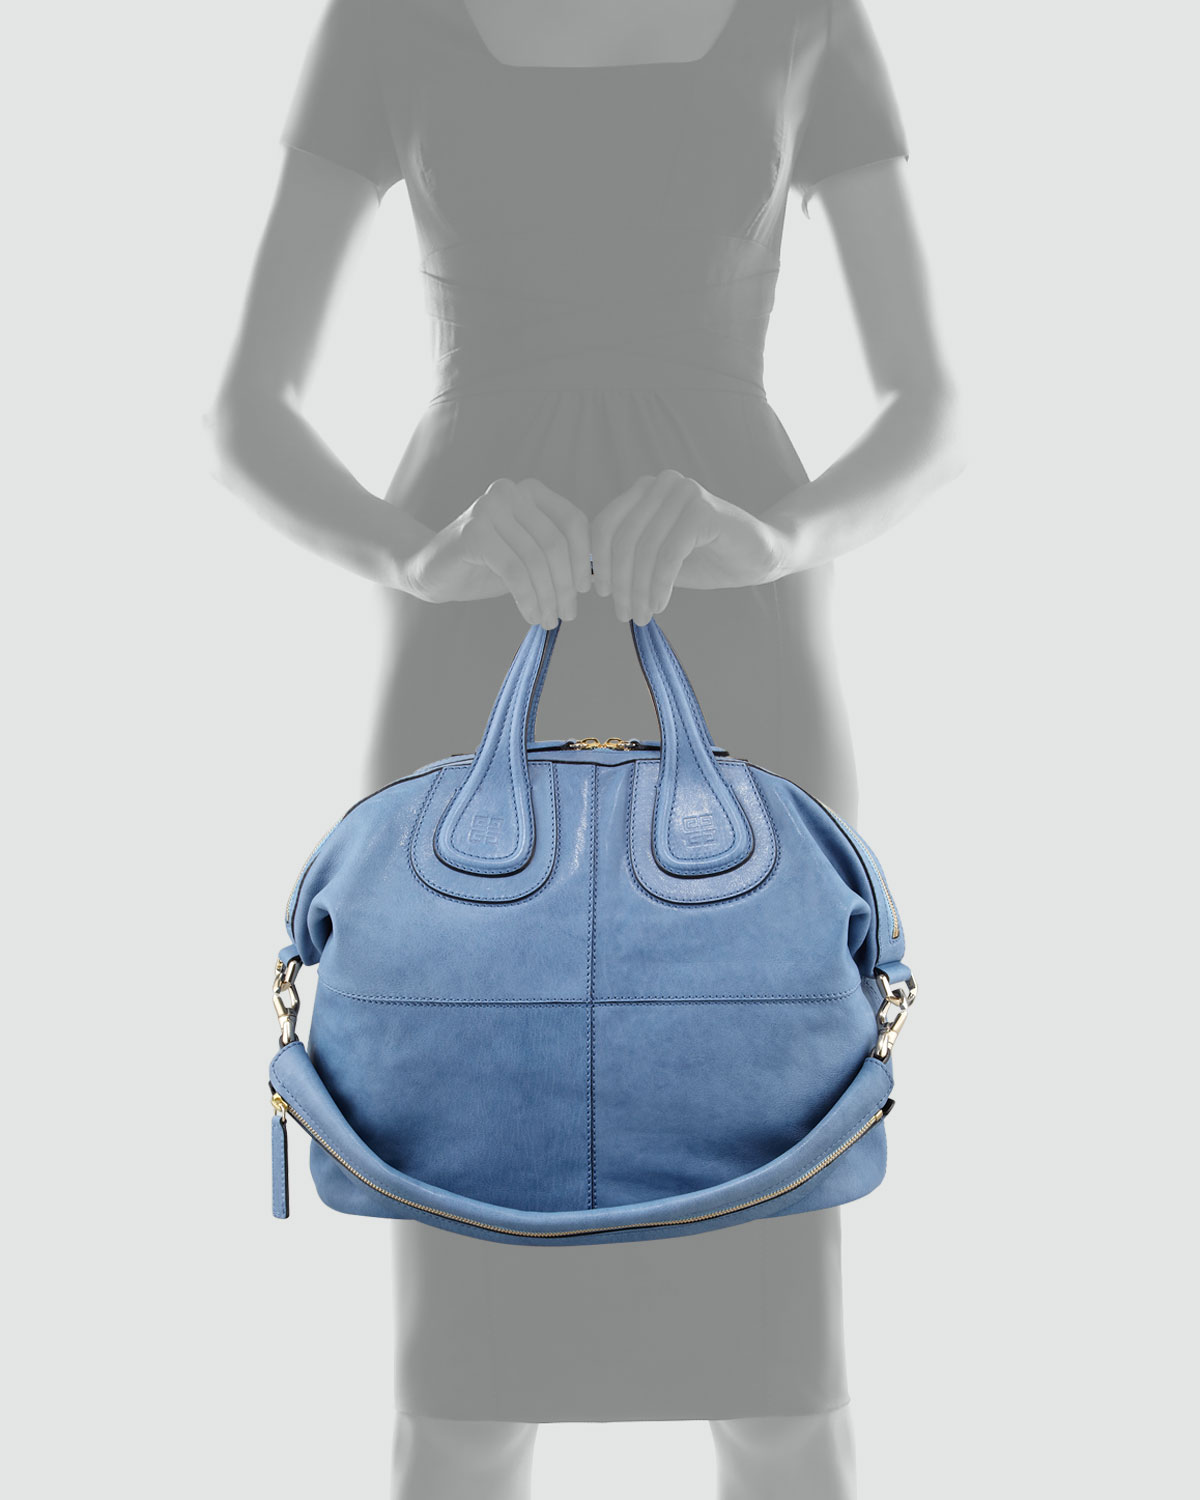 e7ced46170 Lyst - Givenchy Nightingale Zanzi Medium Leather Satchel Bag Sky ...